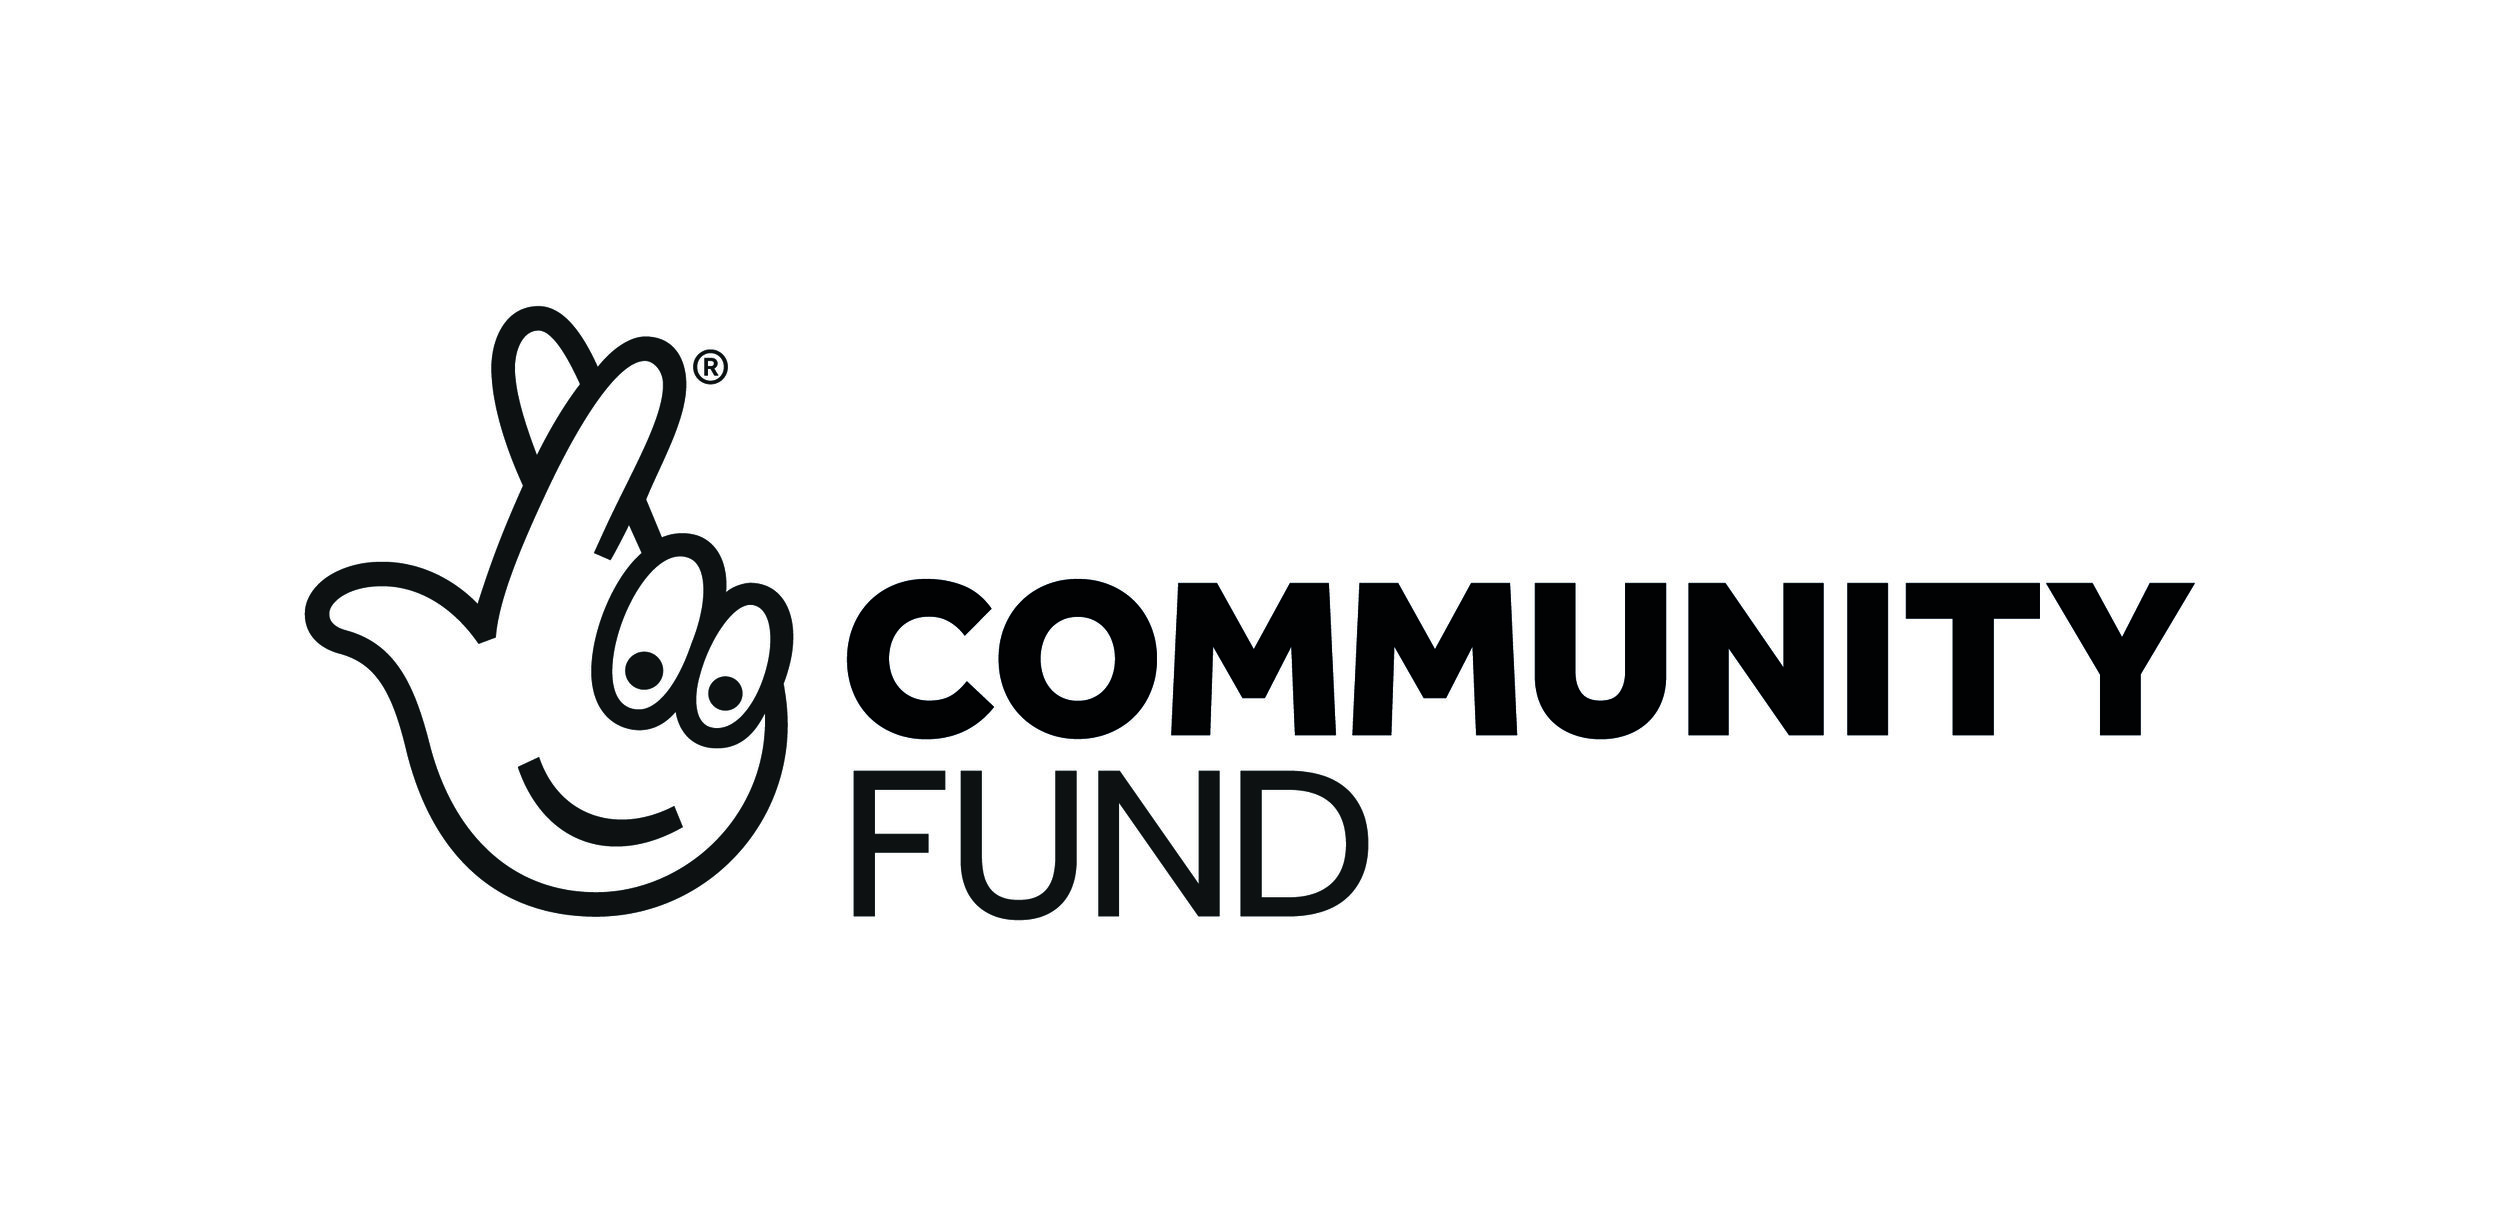 community fund black logo.jpg